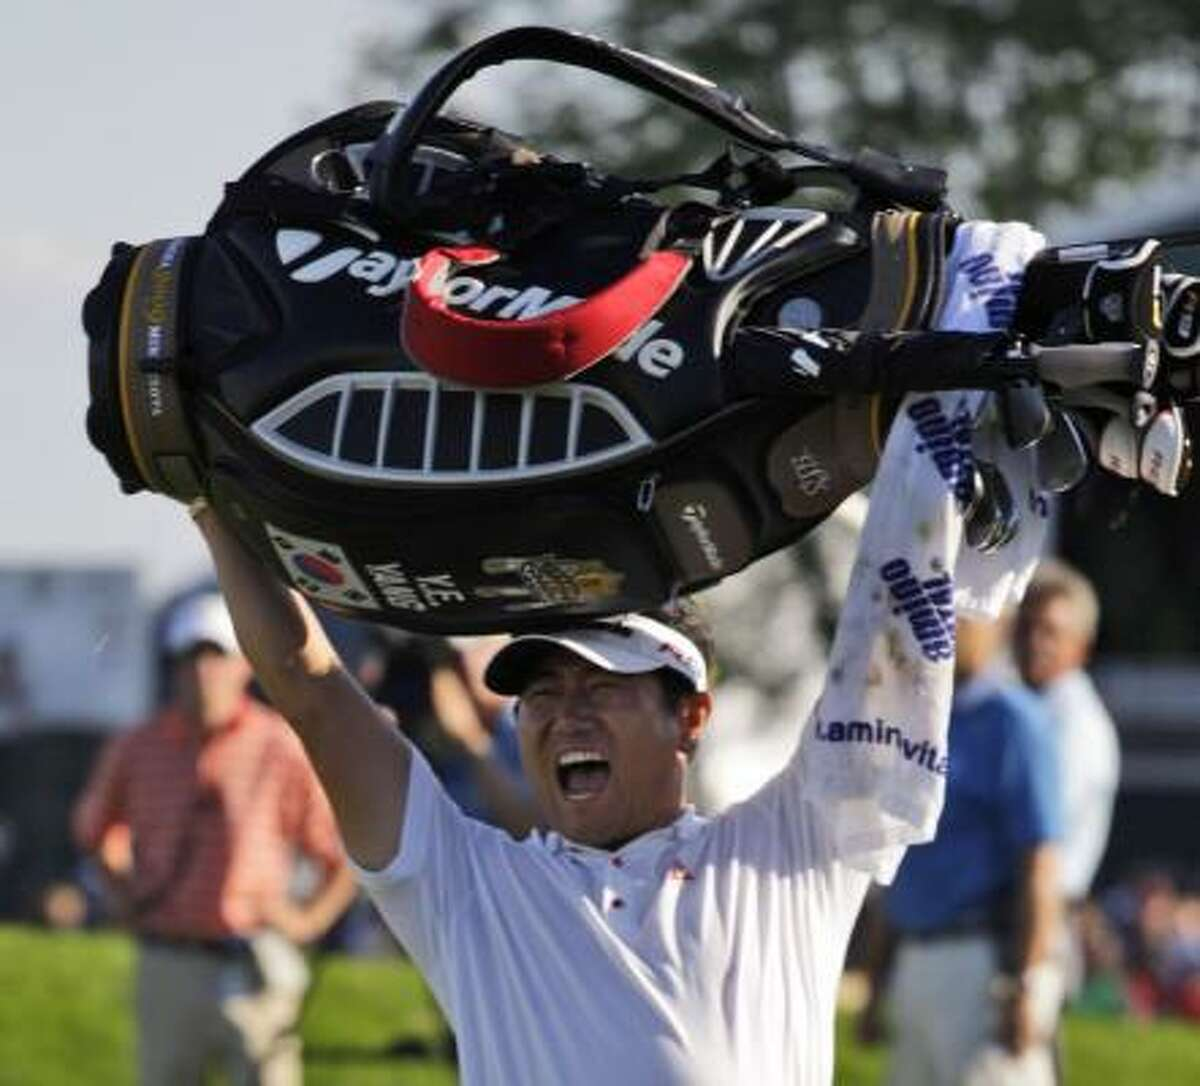 Y.E. Yang holds up his golf bag after winning the 91st PGA Championship at the Hazeltine National Golf Club.